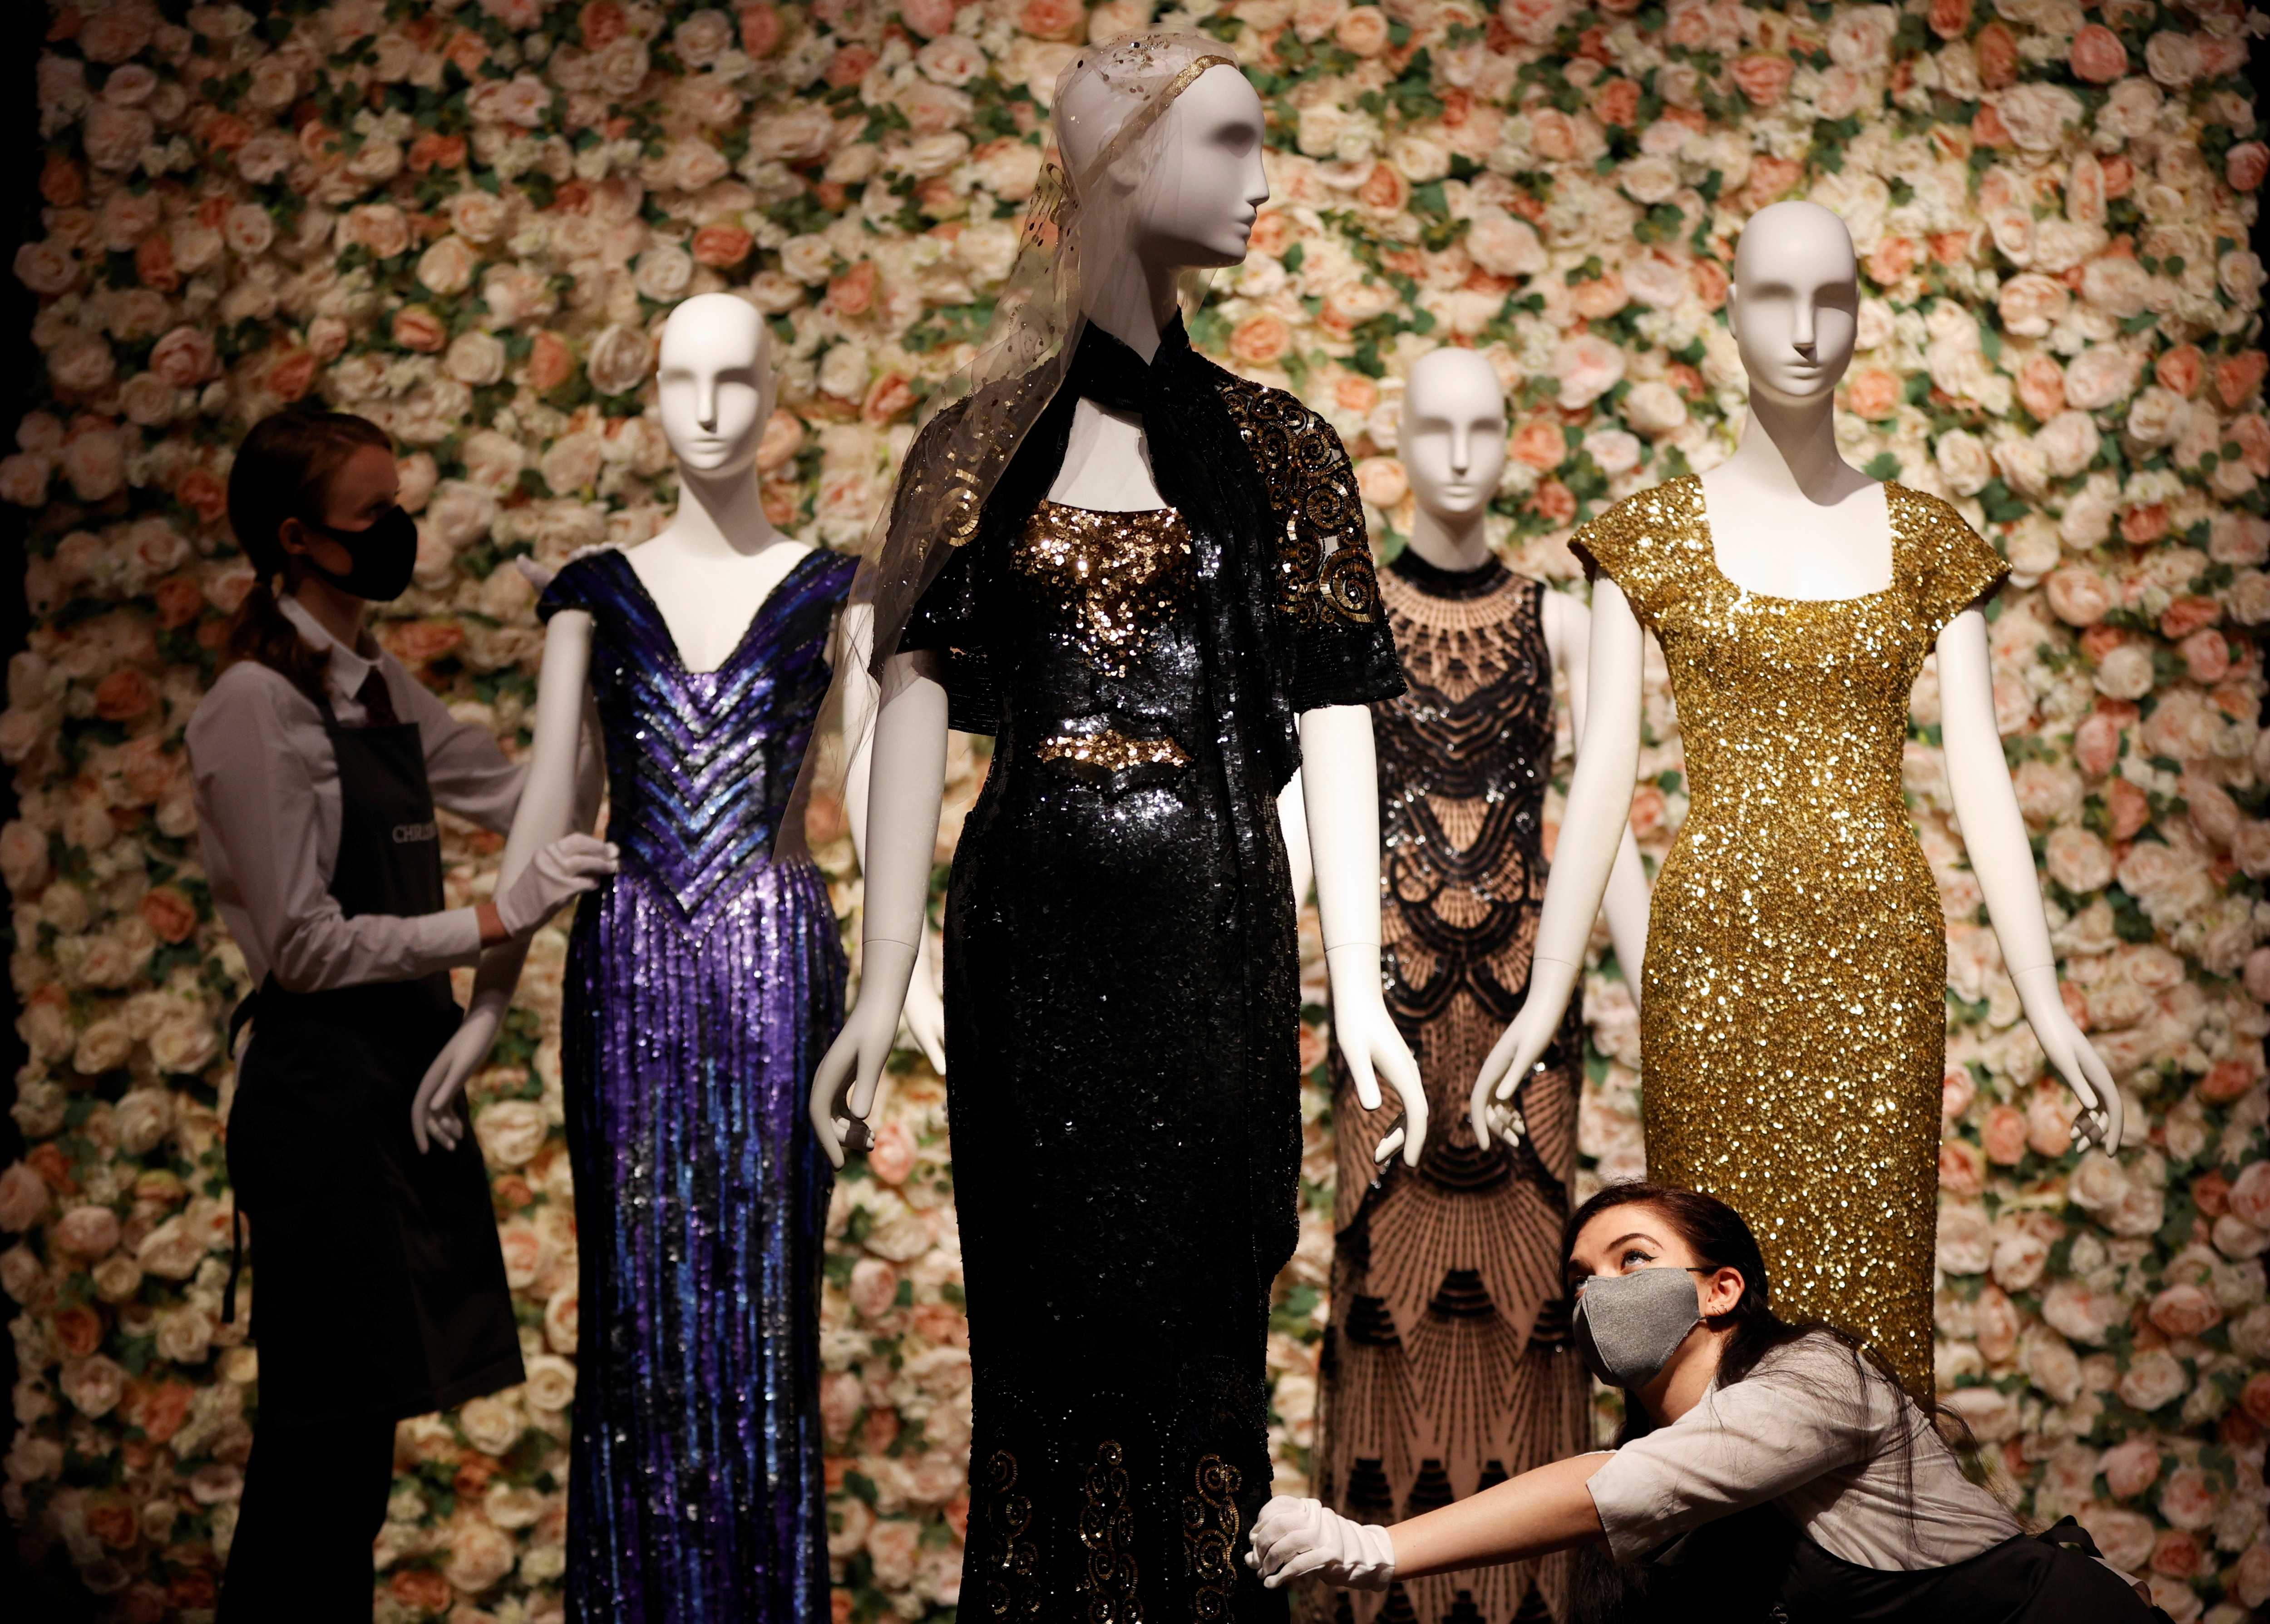 Gallery assistants pose for a photograph next to a black and gold 'Oscar' dress worn by Nicole Kidman by designer L'Wren Scott at Christie's in London, Britain, June 10, 2021. (REUTERS)